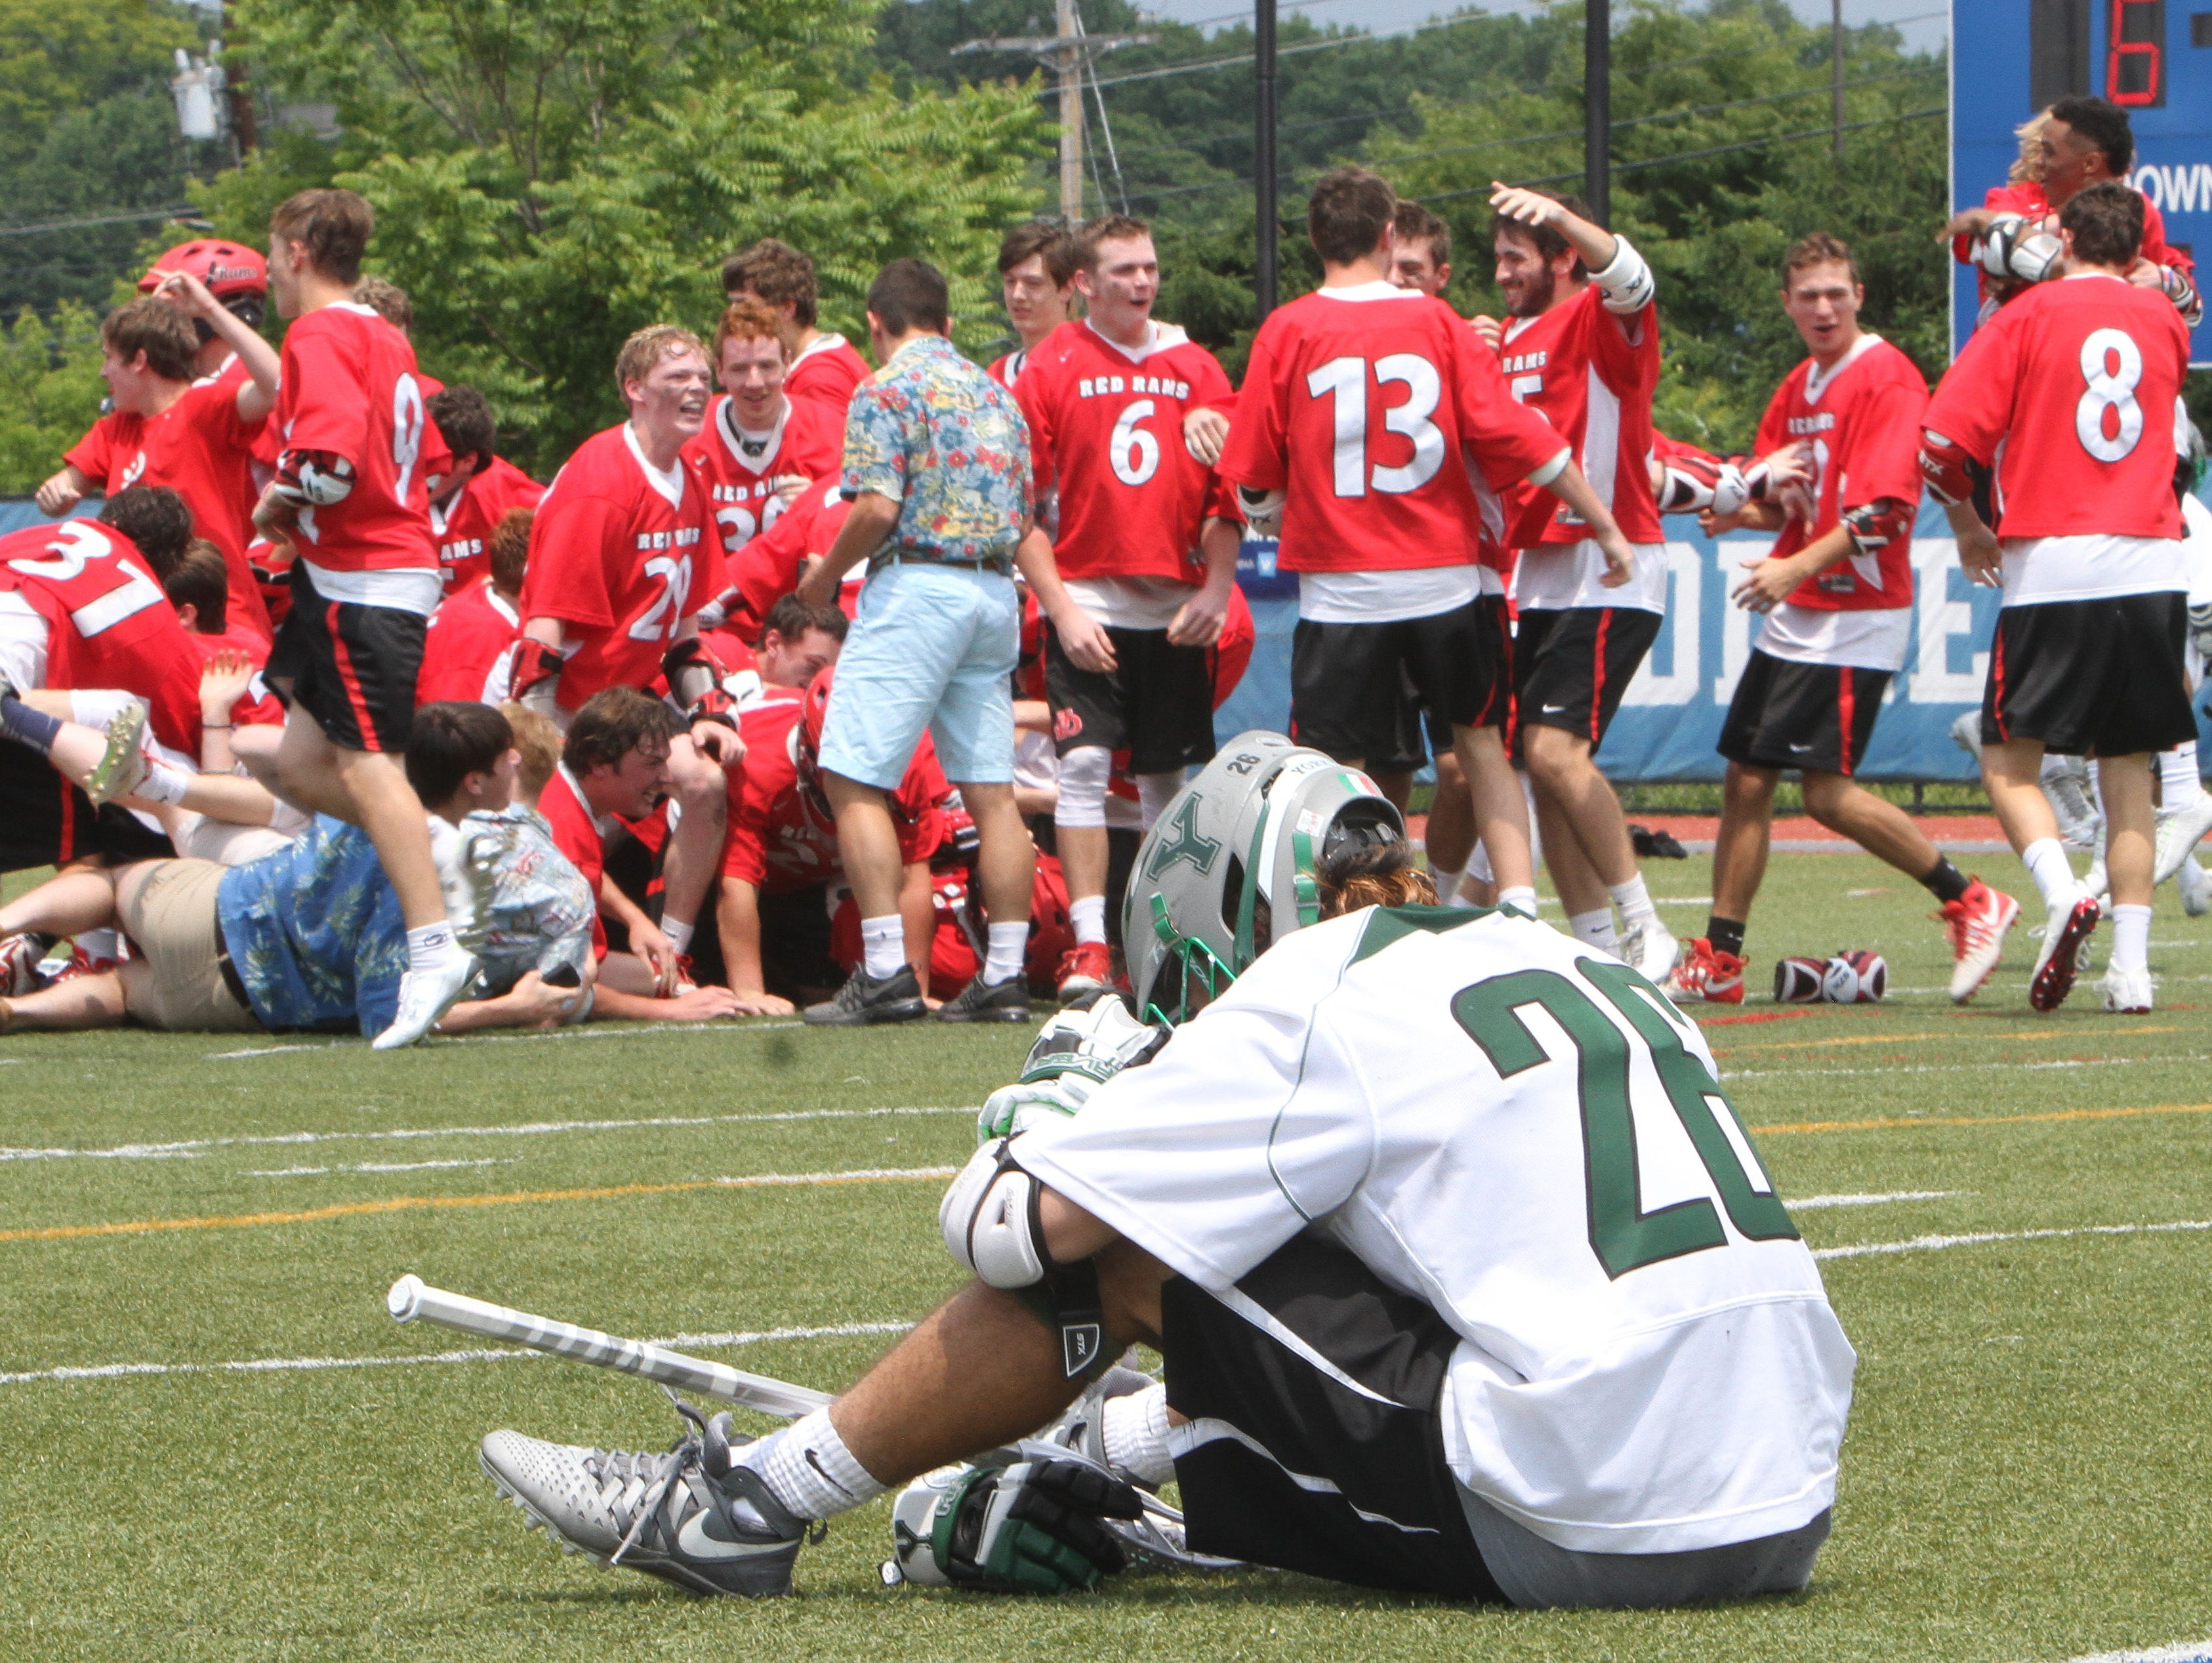 Yorktown's Dom Cioffi (26) sits on the field as Jamesville-Dewitt players celebrate their 9-6 victory in NYSPHSAA Class B championship lacrosse game at Middletown High School June 11, 2016.